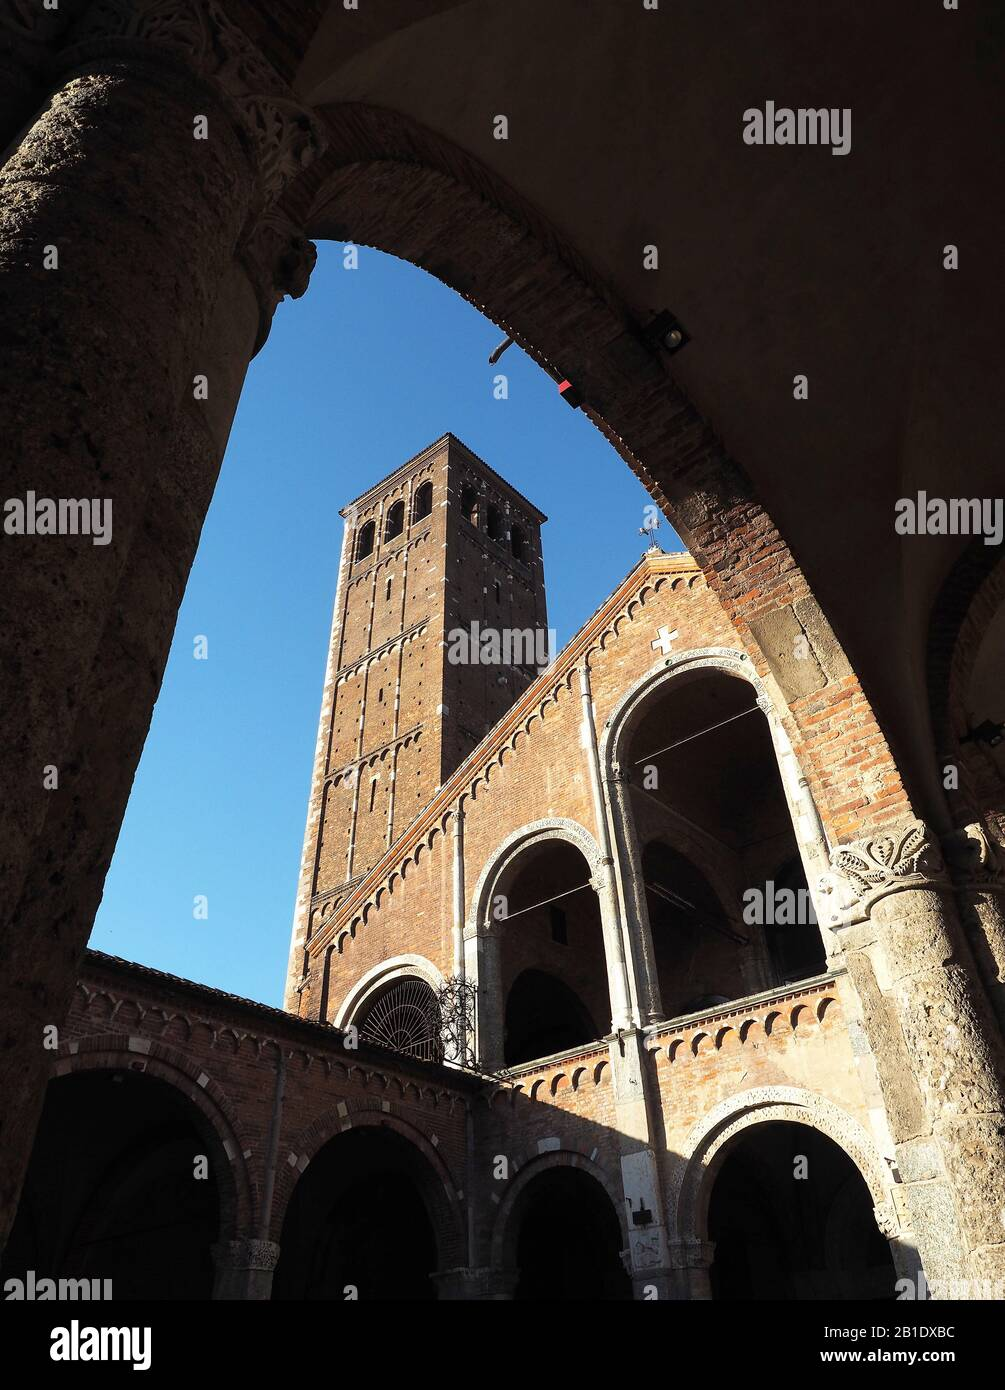 Europe, Italy, Lombardy, Milan, Abbey of S. Ambrogio. Early Christian and medieval Romanesque Stock Photo